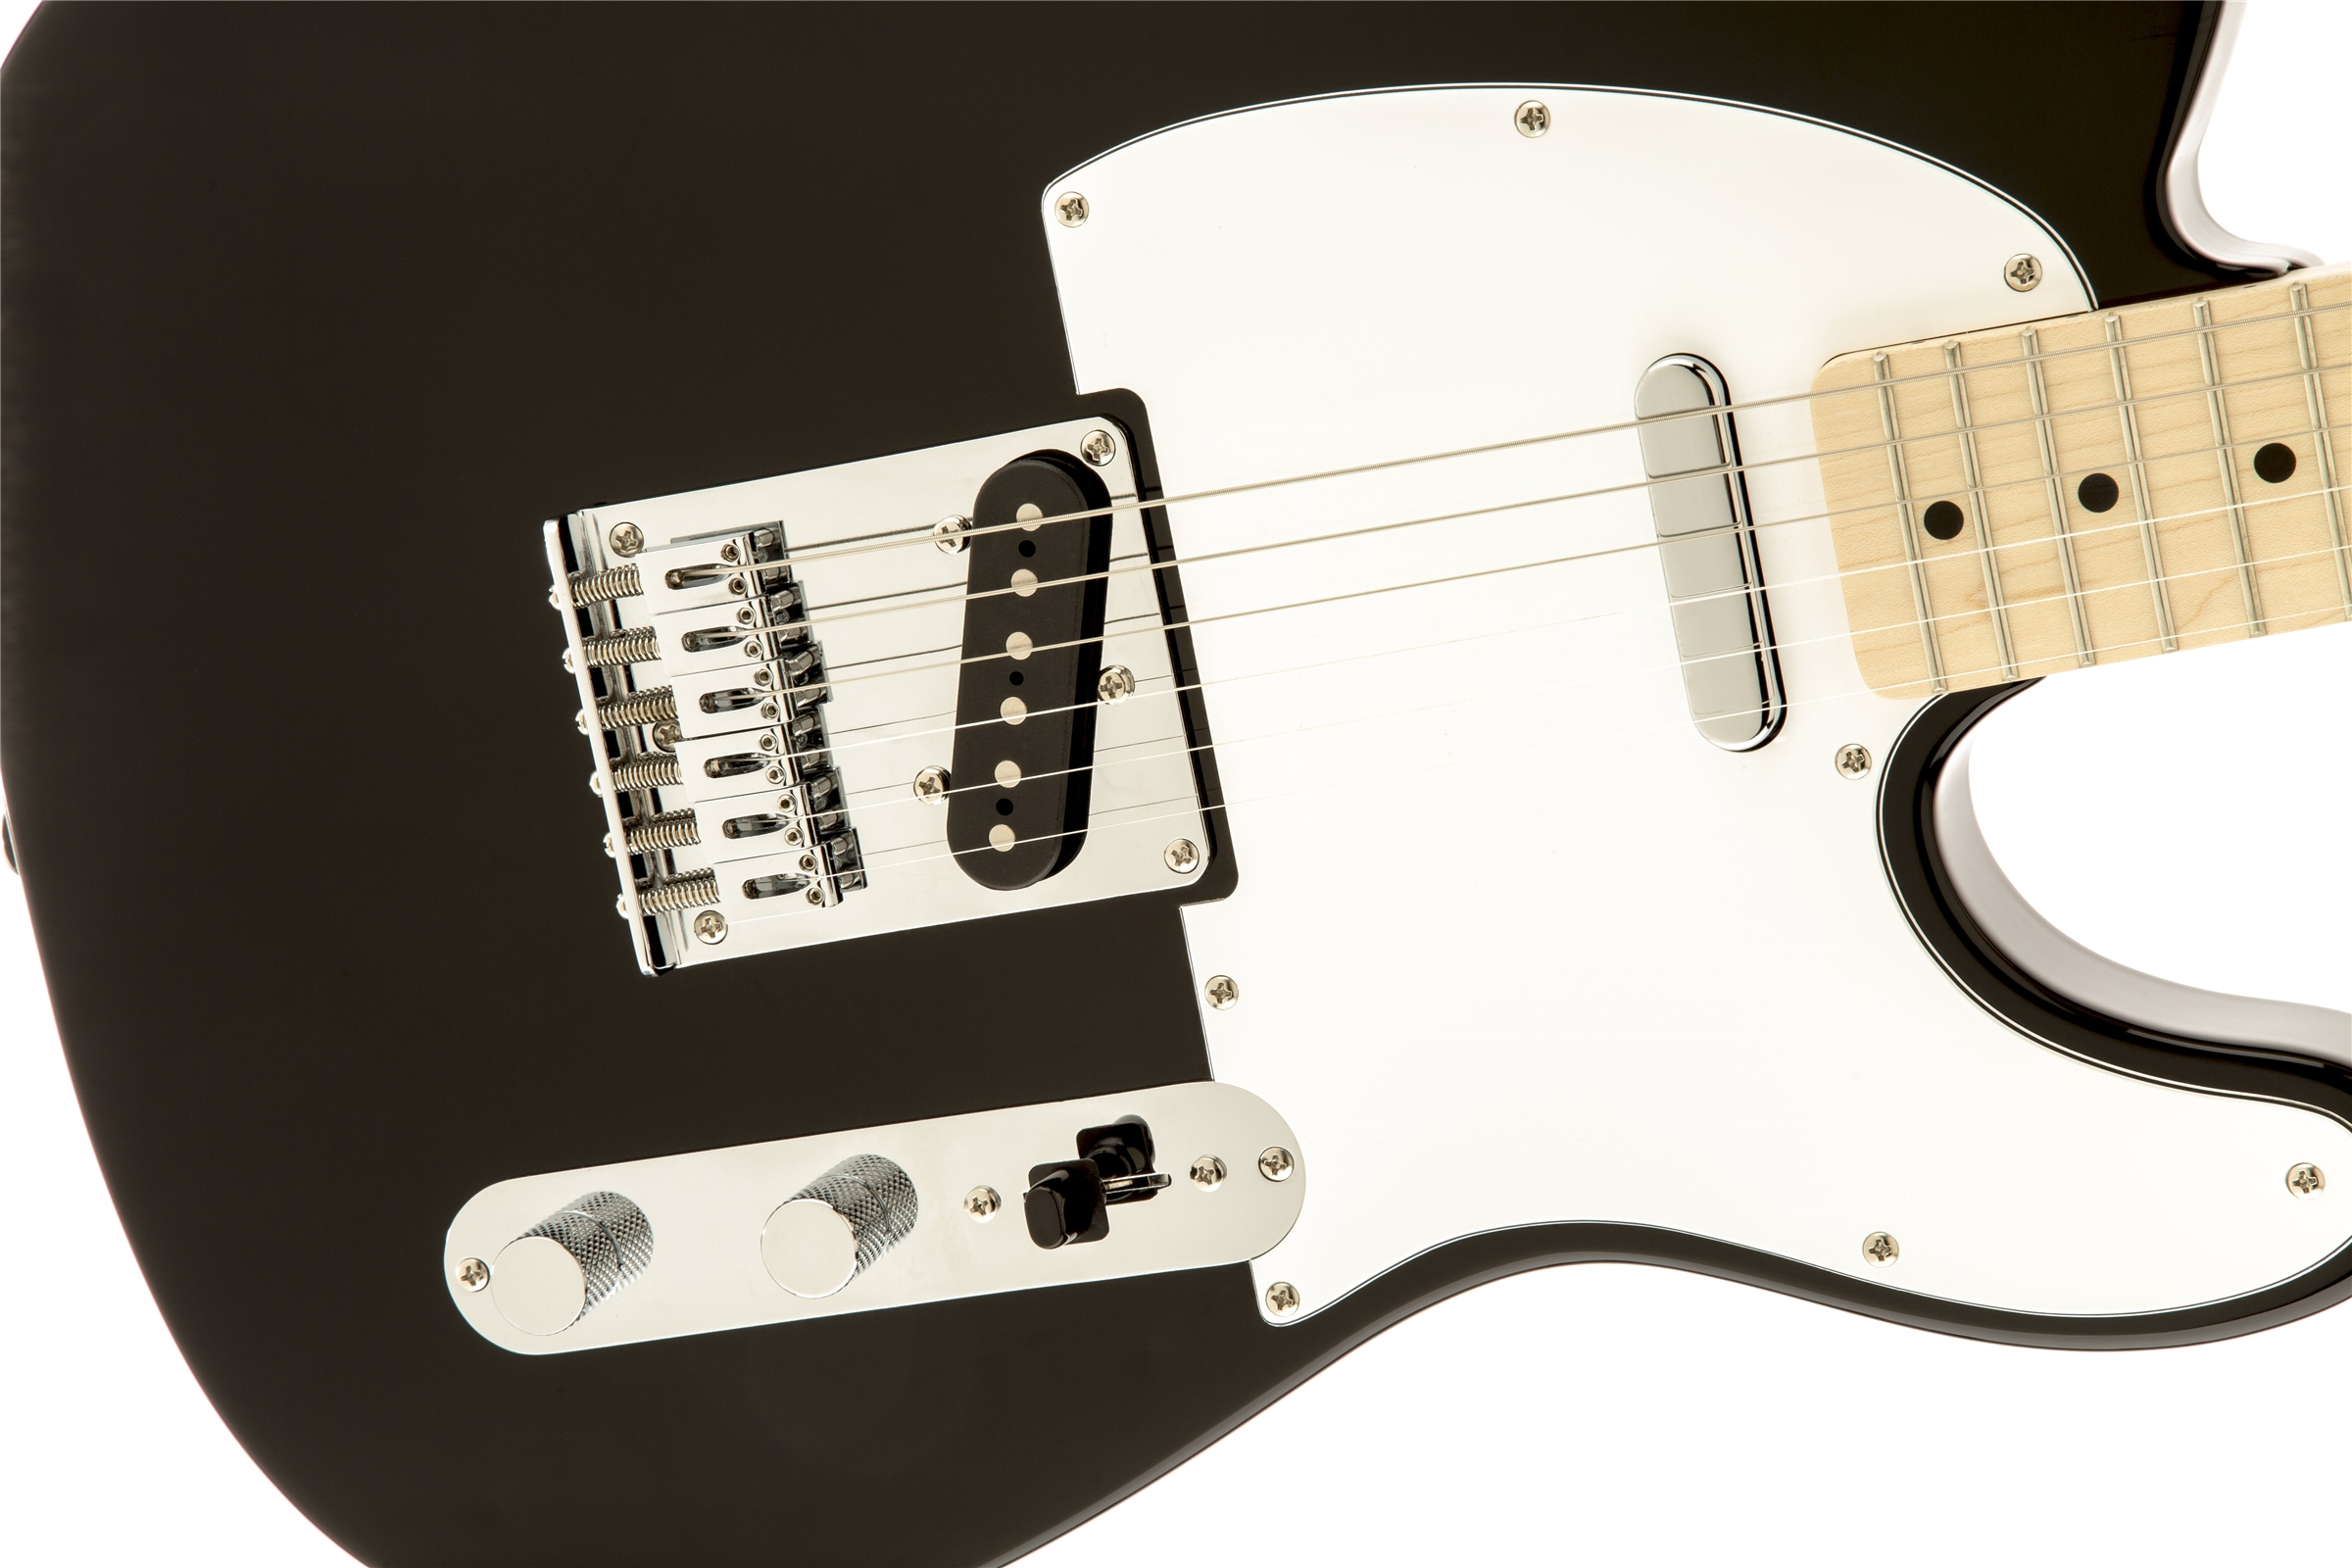 Affinity Series Telecaster Squier Electric Guitars Fender Mustang Guitar Humbucker Wiring Diagram Tap To Expand